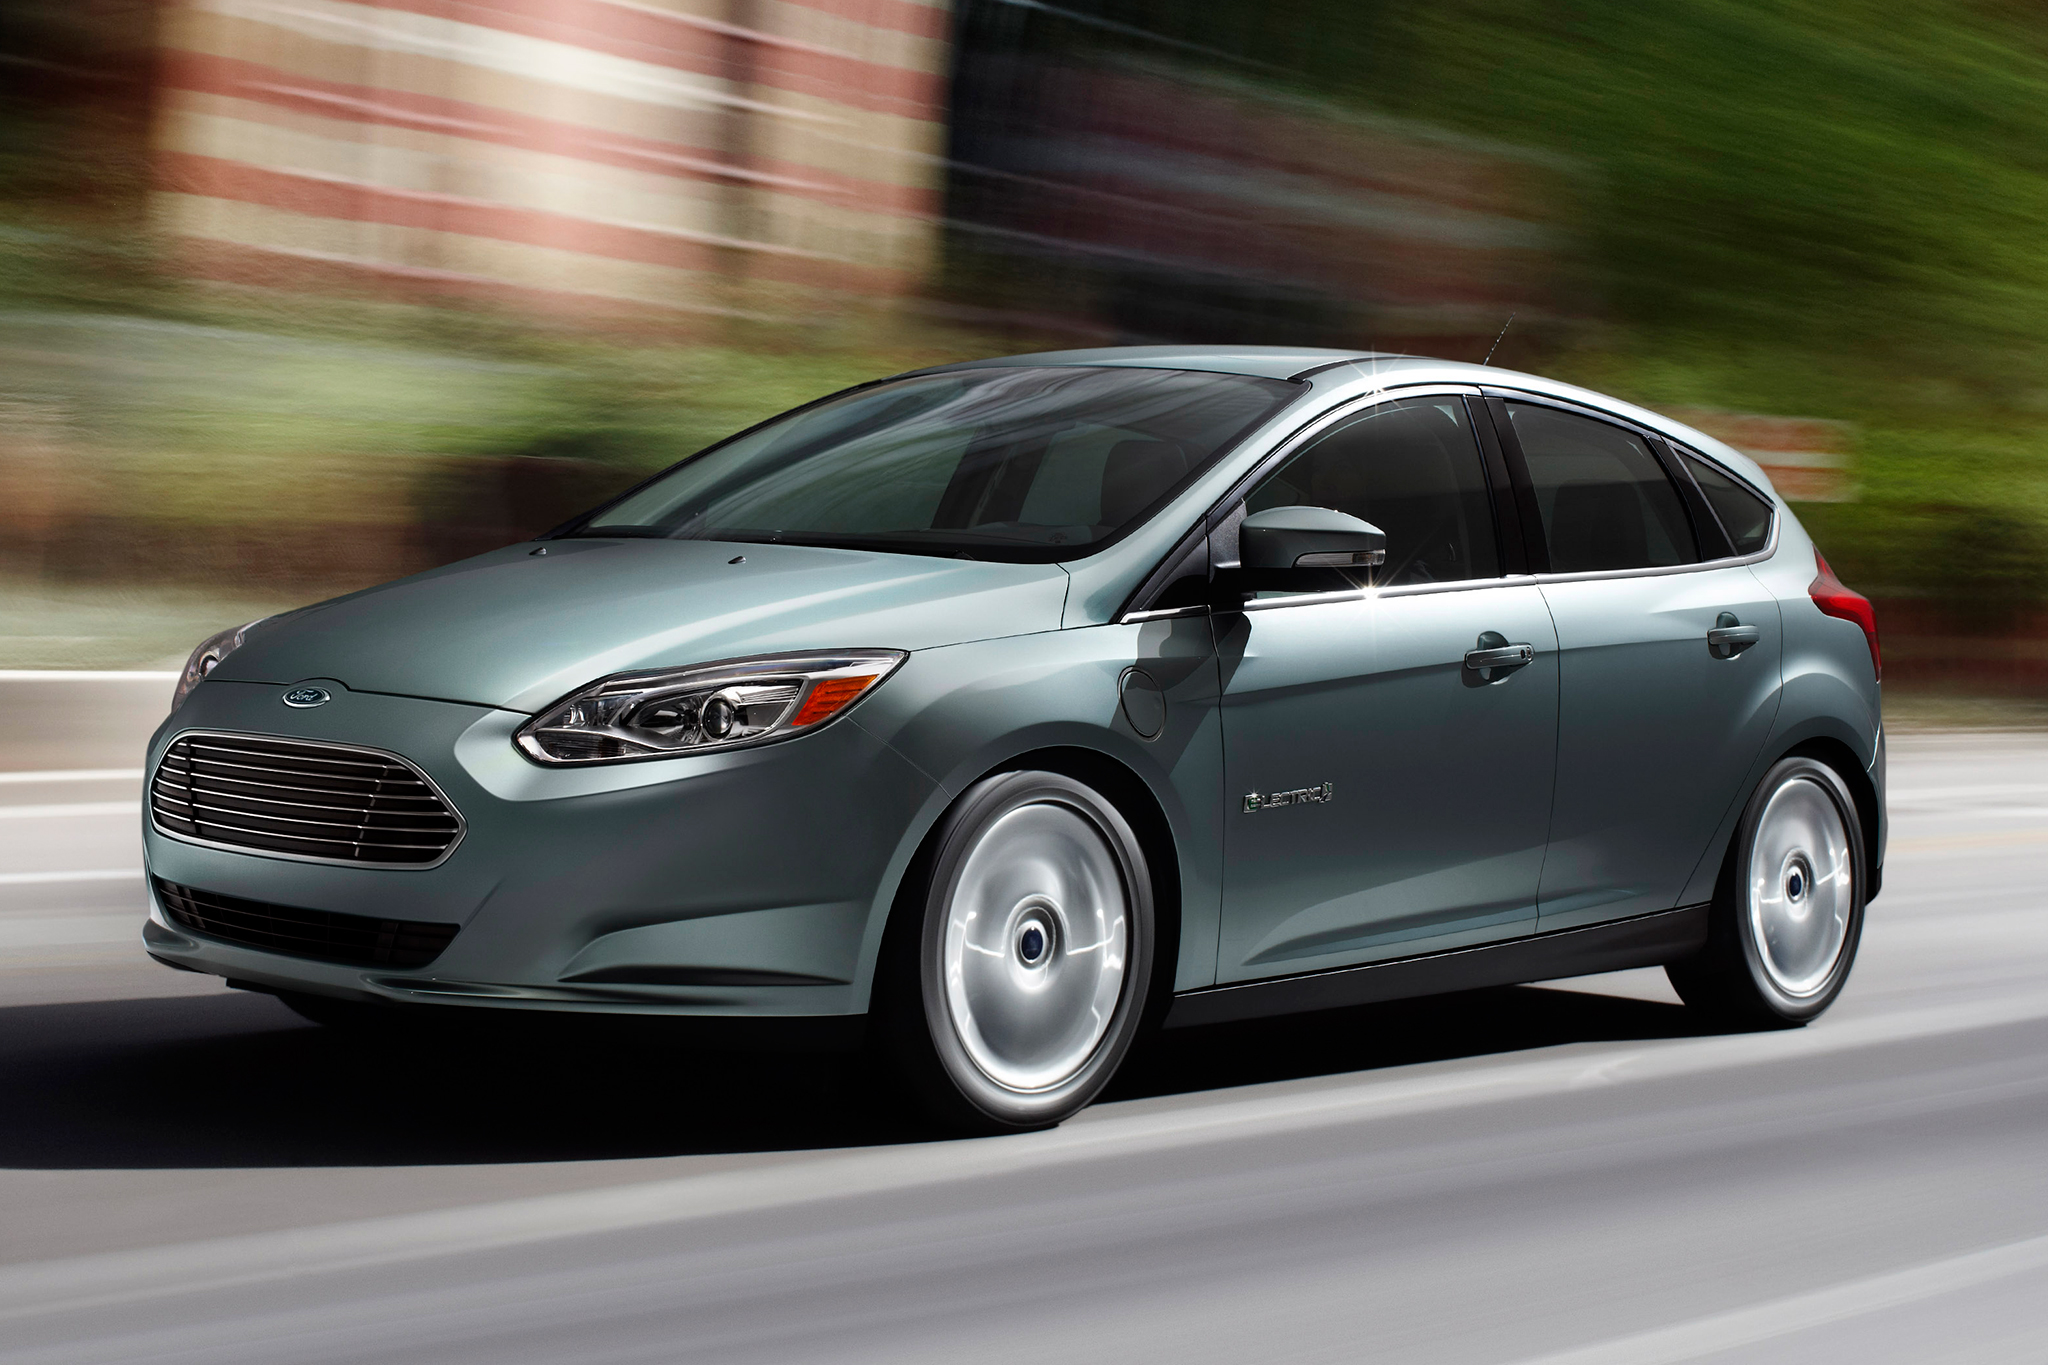 Ford Focus Electric Vehicles Recalled for Potential Power Loss